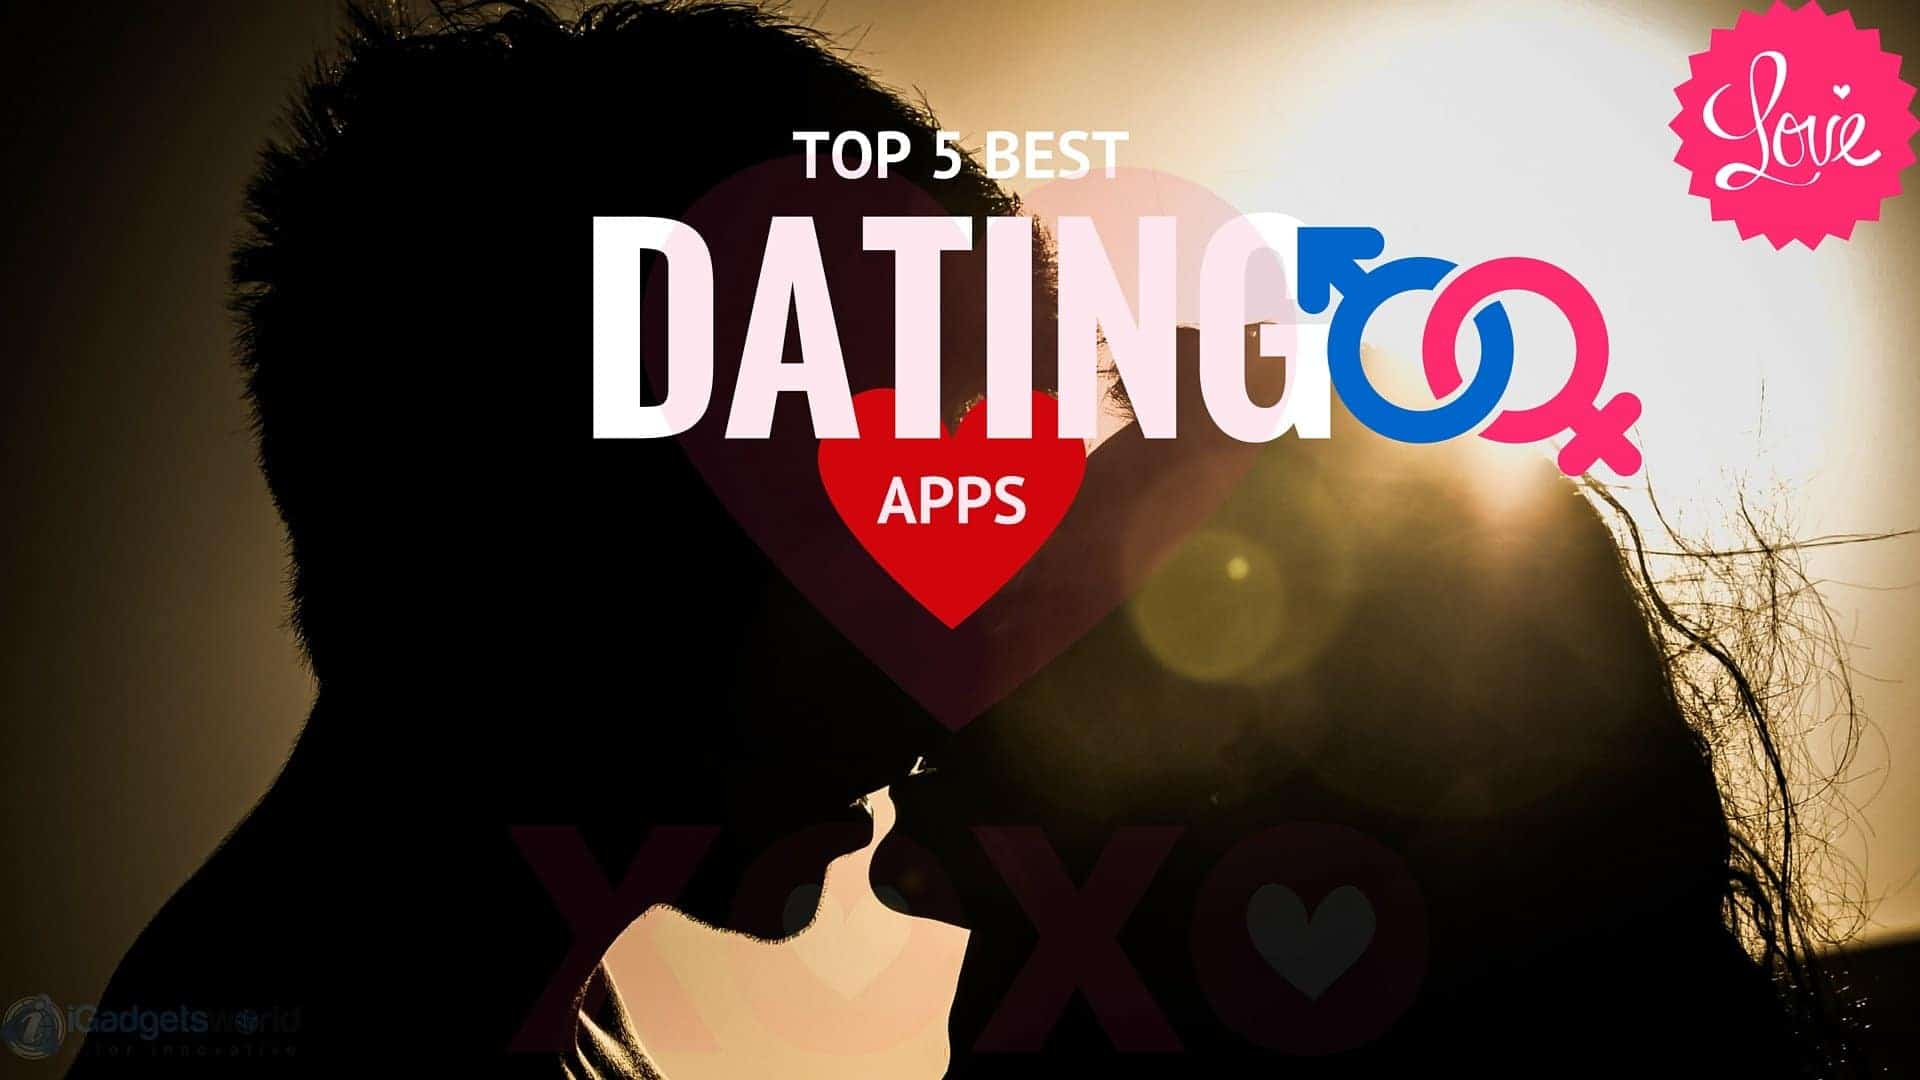 dating apps in india The annual cyber-dating expert top 10 mobile dating apps highlights some of the best and newest mobile dating, social networking, and social discovery apps.